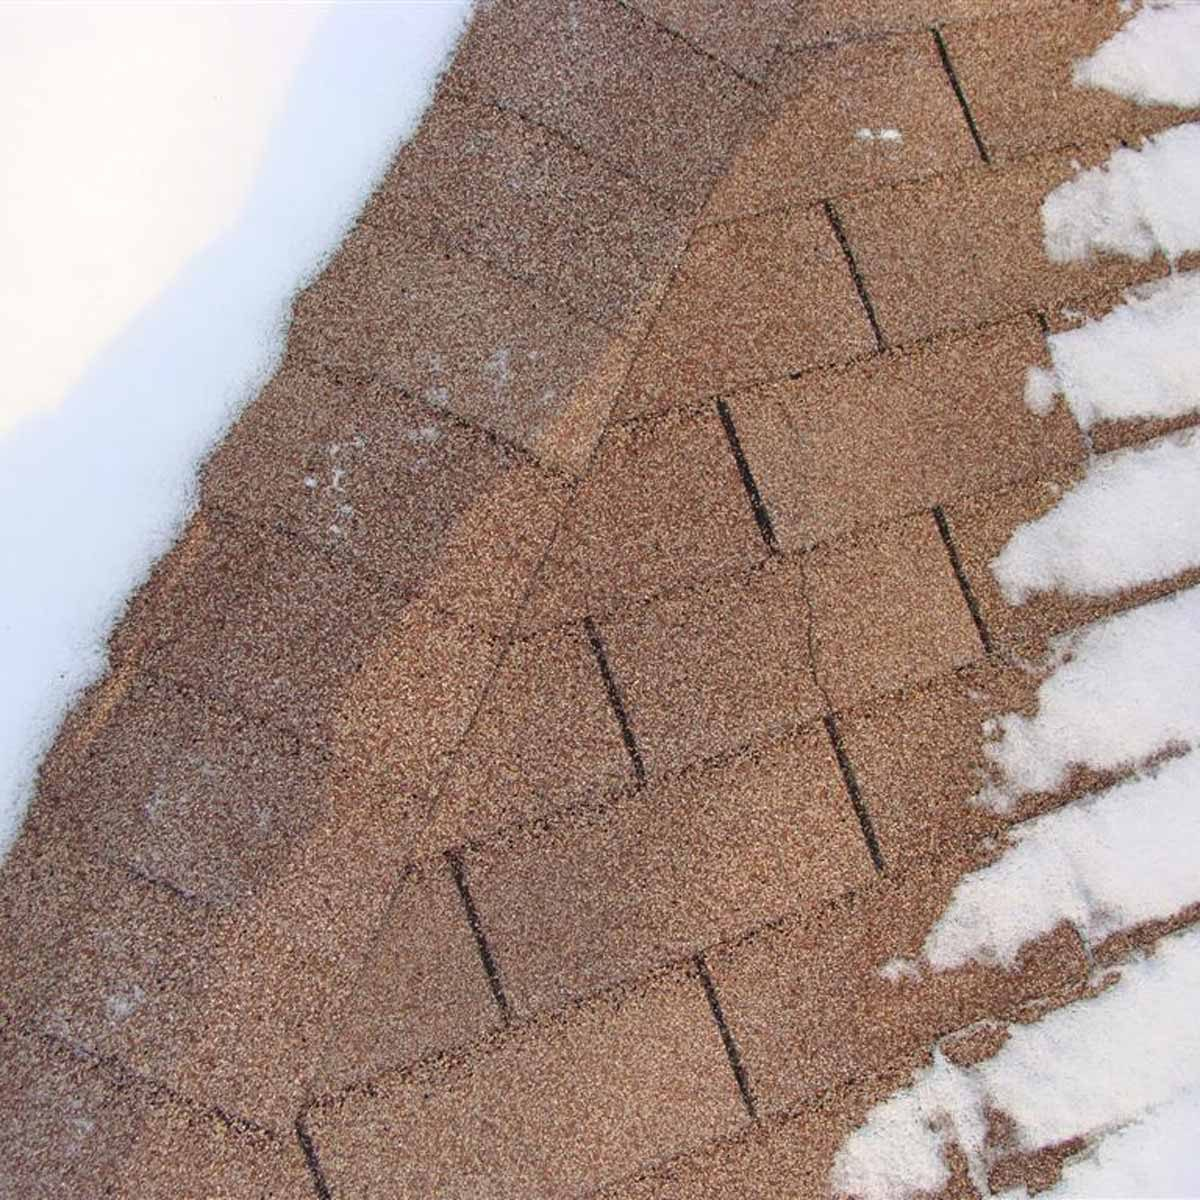 What Should A Roof Replacement Cost